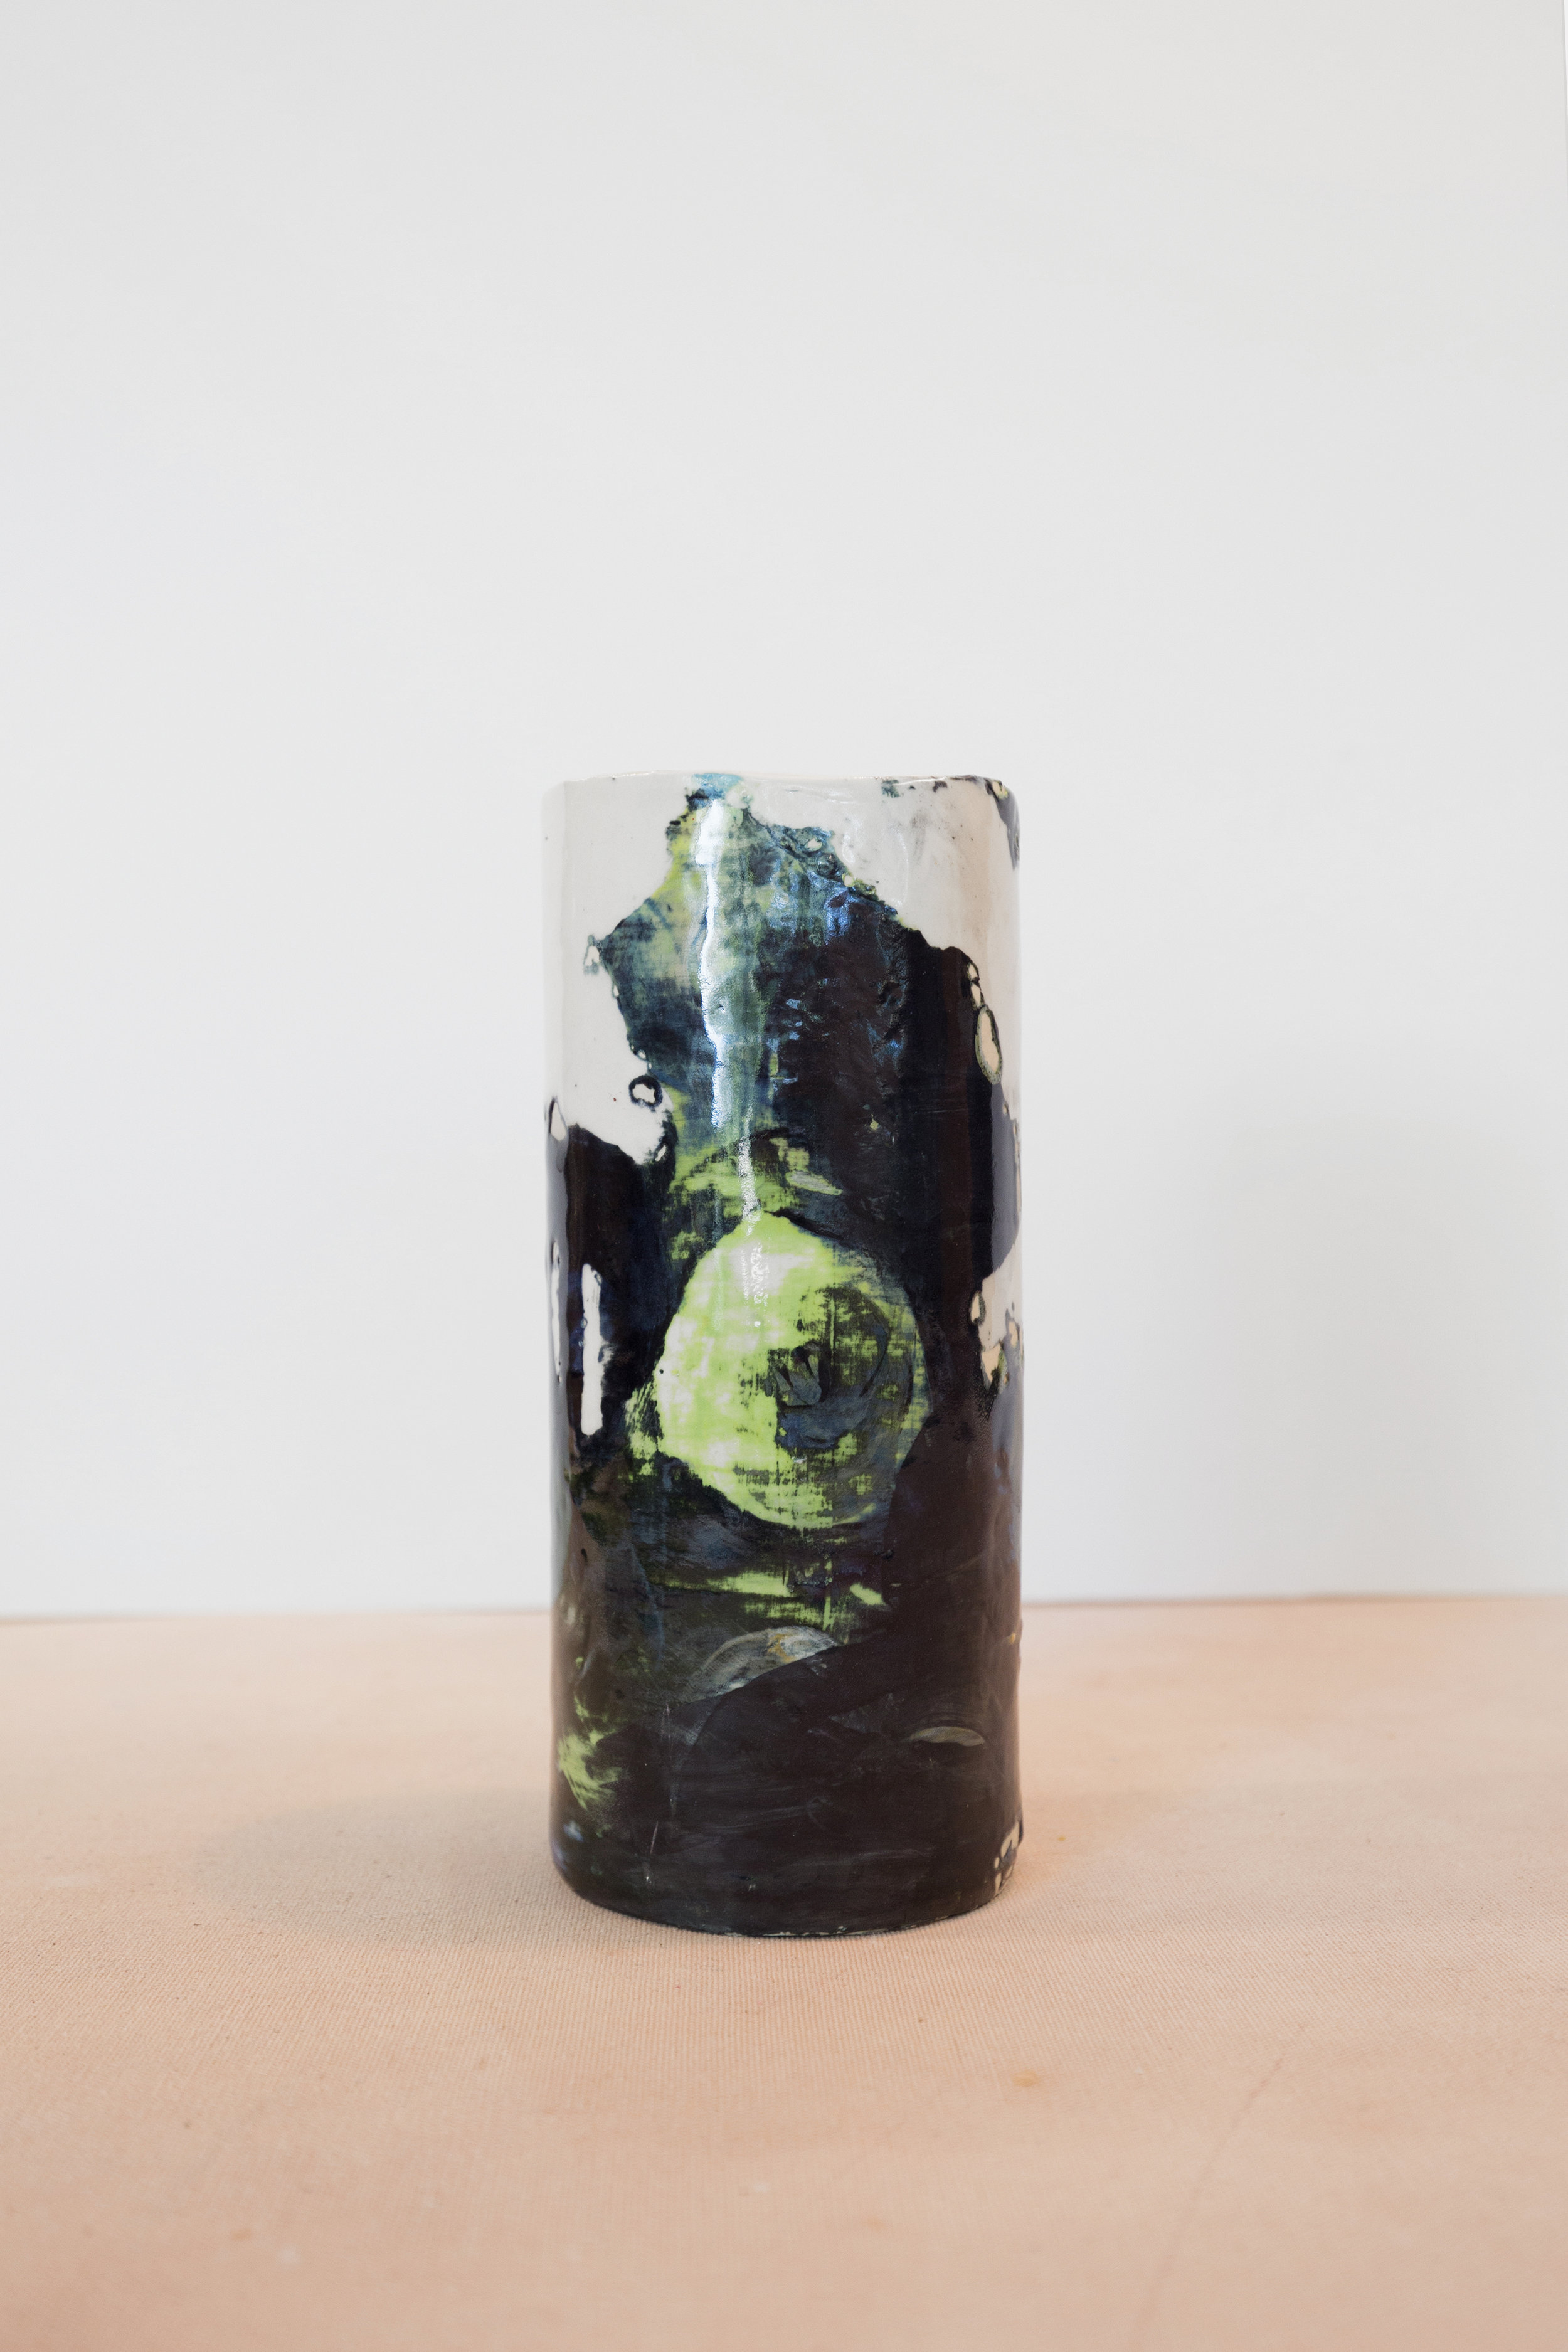 Ceramic Vase made with residents of the  Perley and Rideau Veterans' Health Centre  (Ottawa, On), 2019